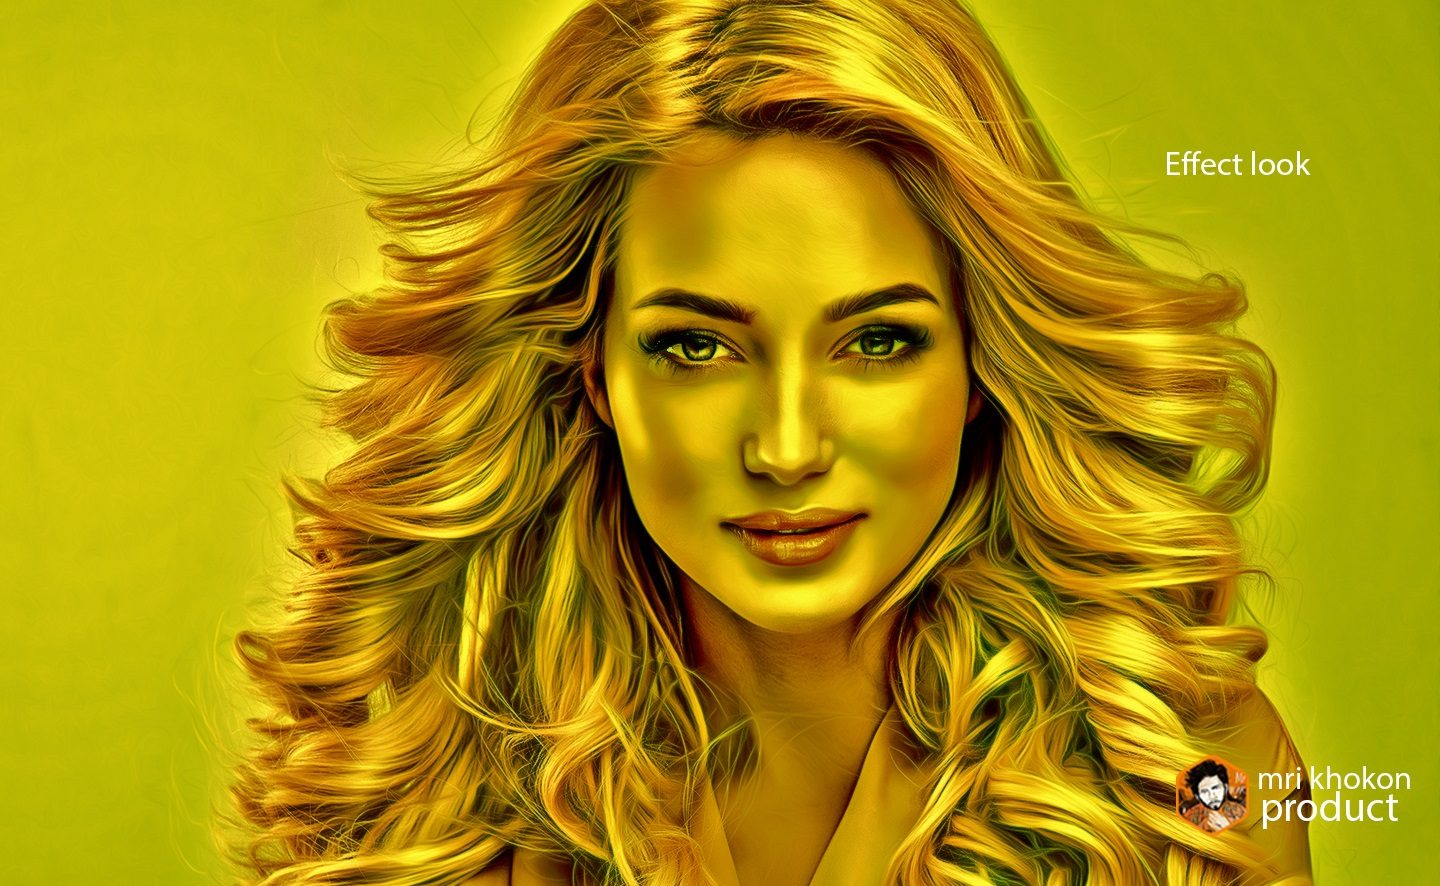 Gold Look Photoshop Effect example image 12